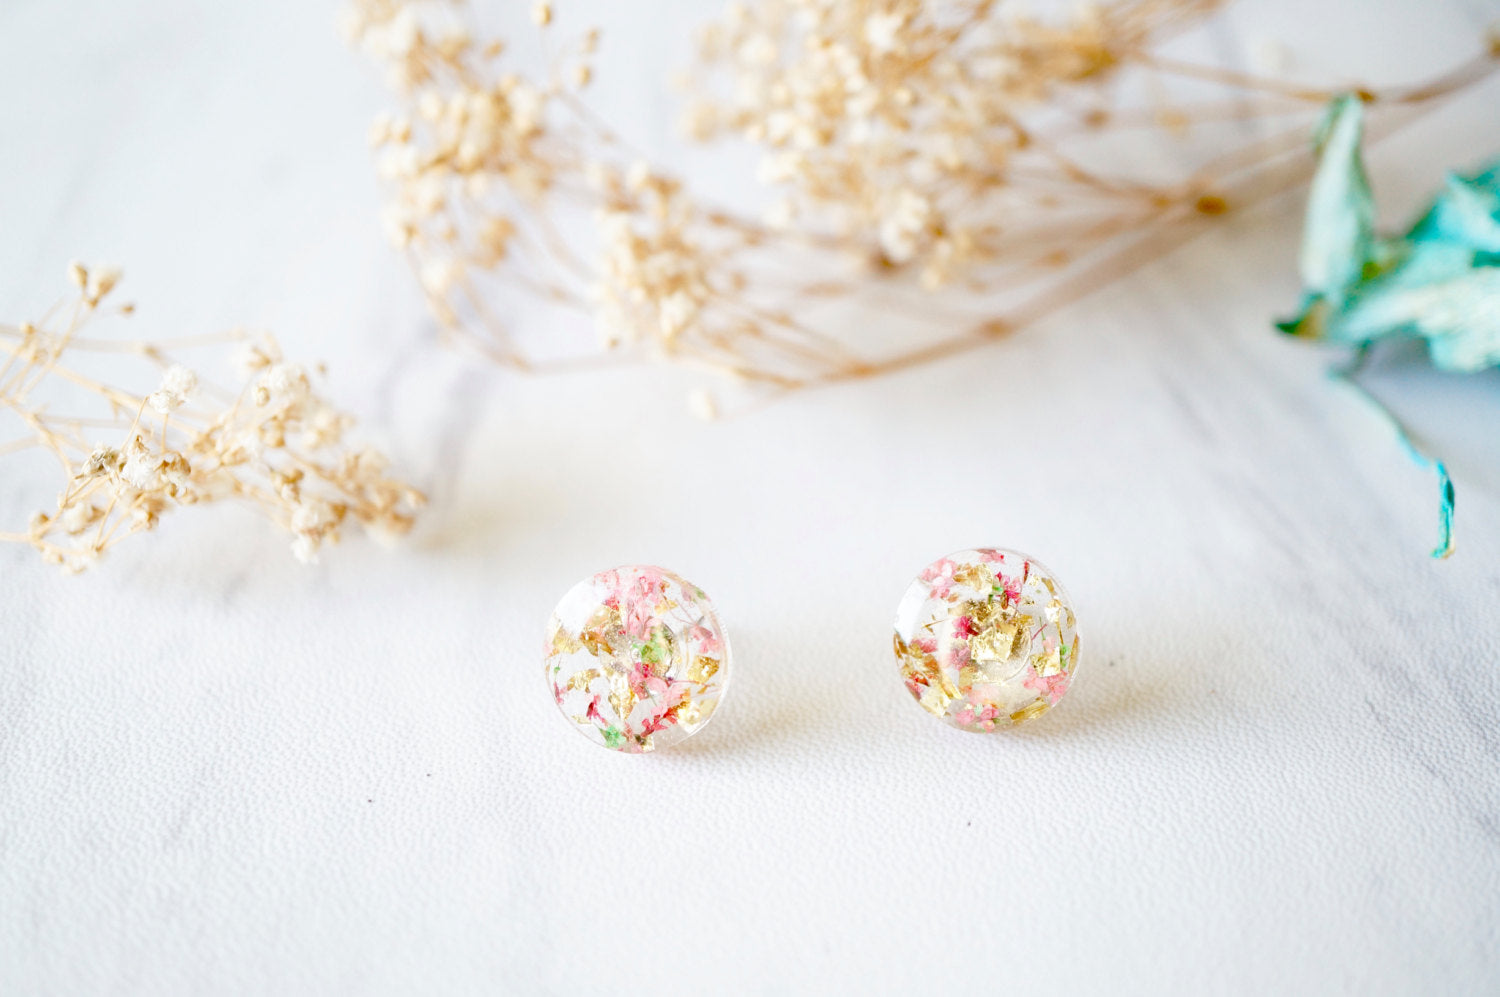 Floral Ring Outer Purple Dream Earring| 100/% Handmade Dry Flower Resin Dreamy Asian Style Earrings Clip On Gold Flakes Vintage